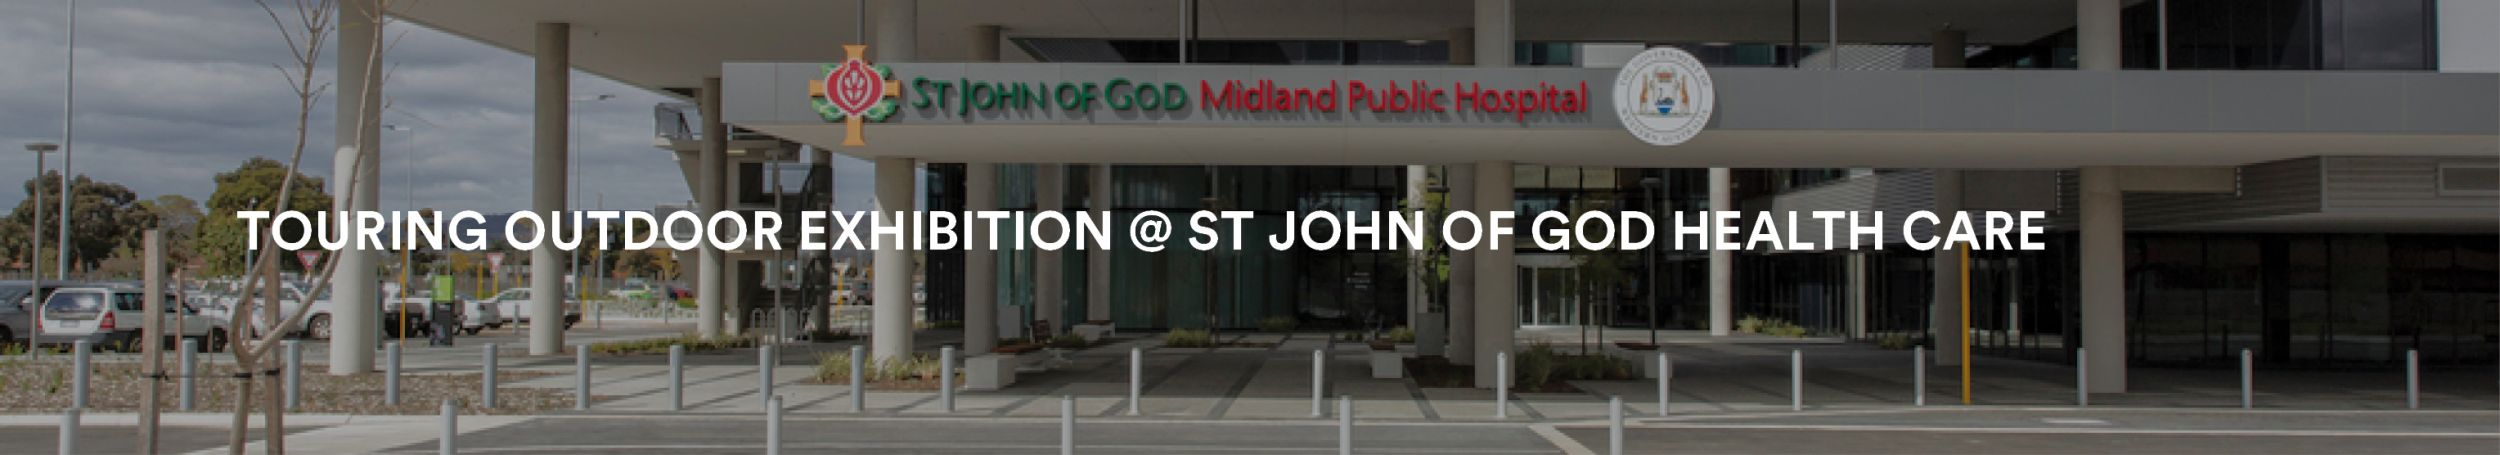 Touring Outdoor Exhibition - Salon des Refuses | St John of God Health Care Midland